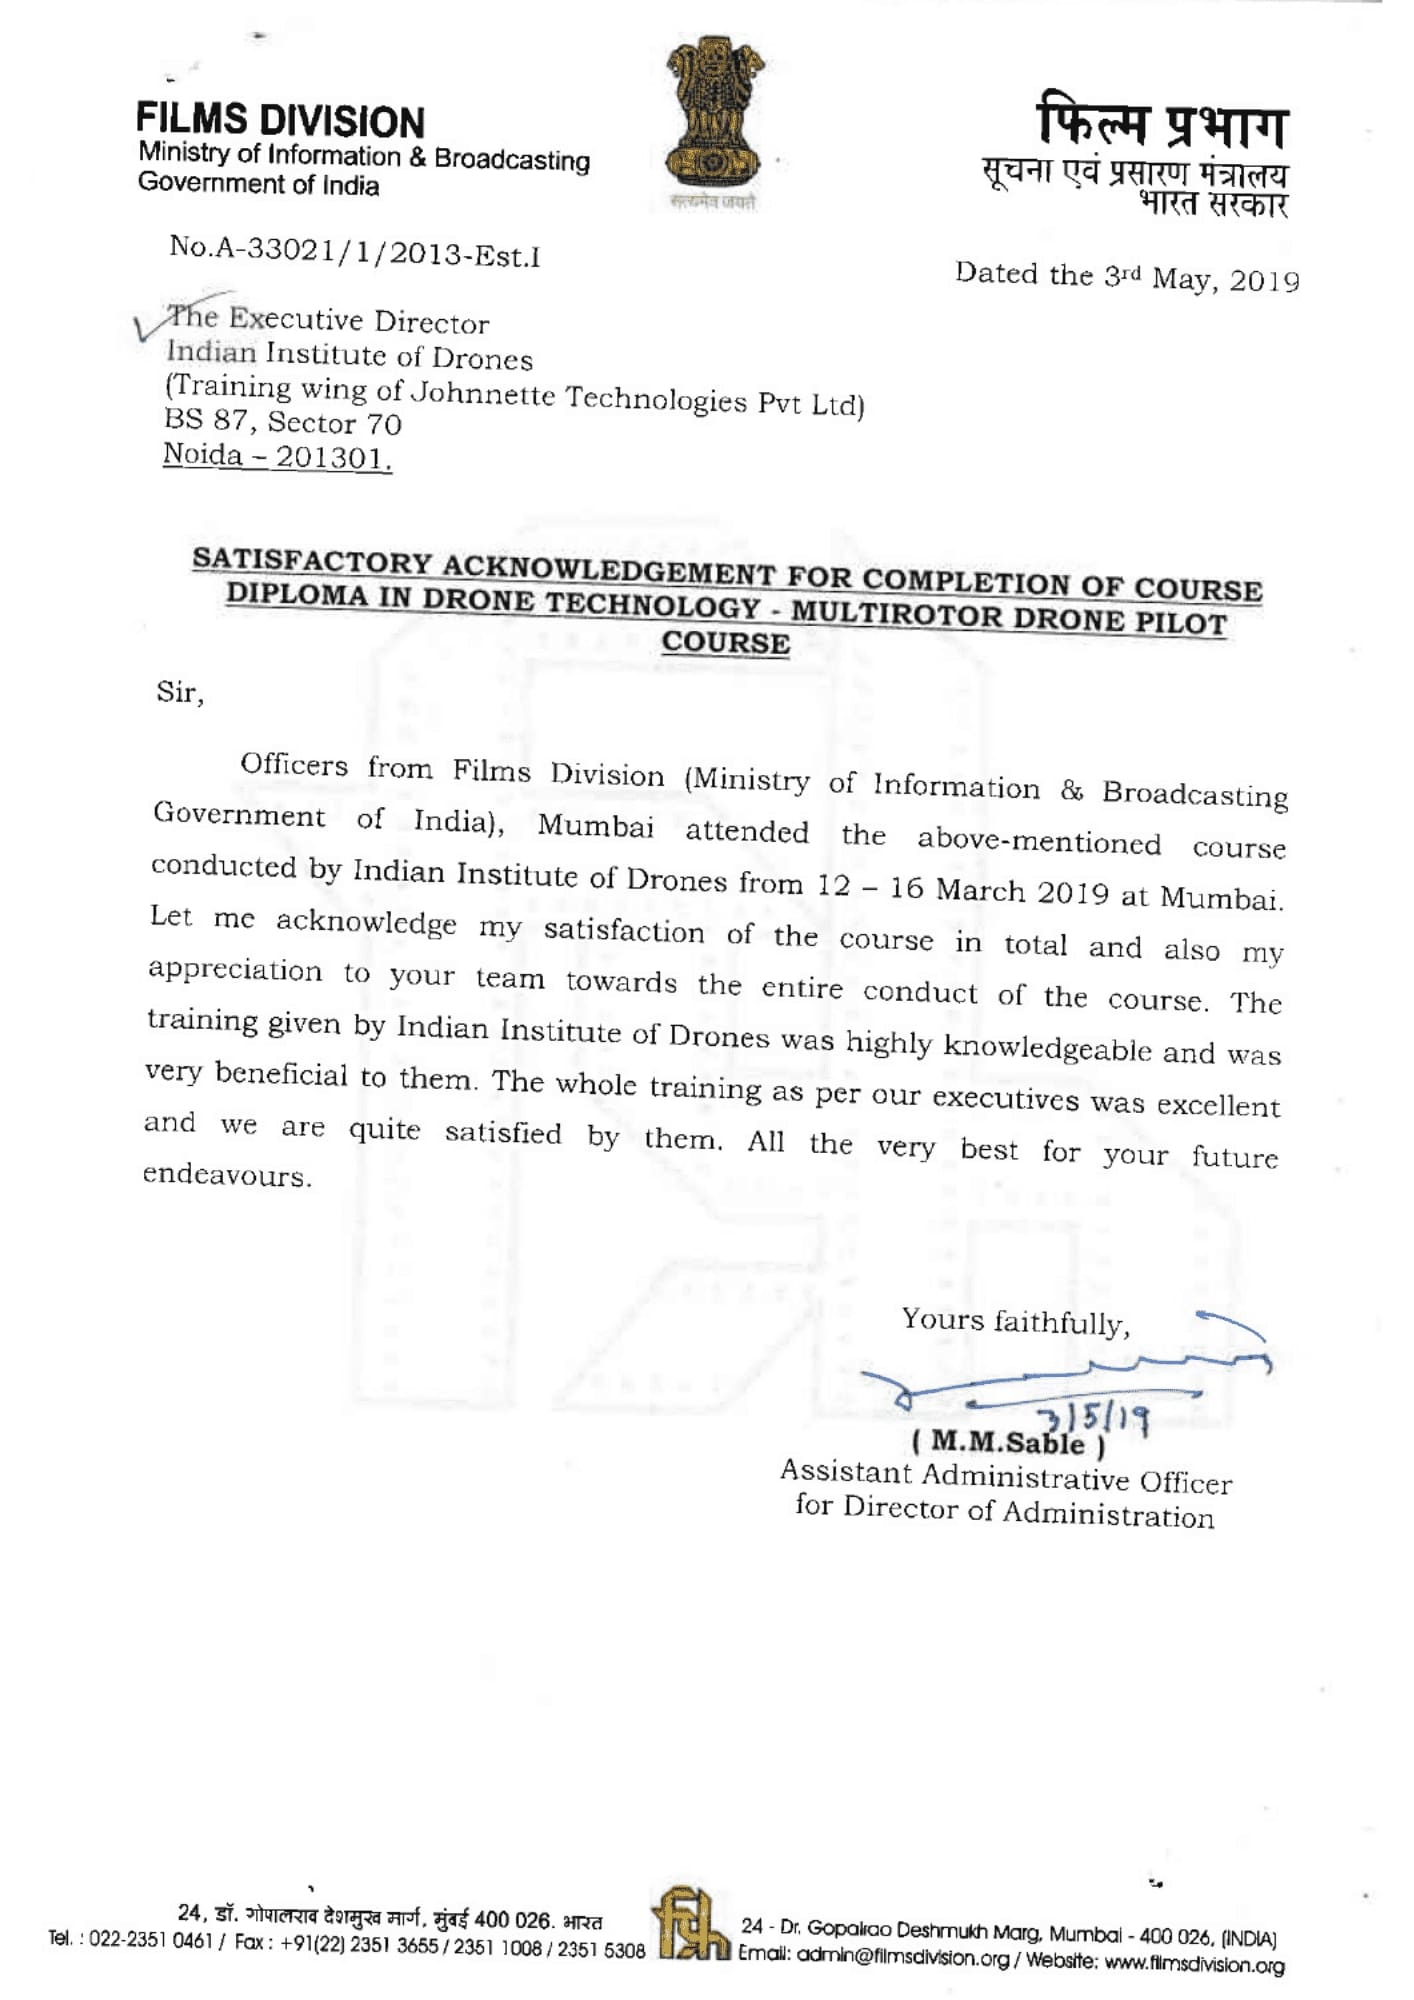 Satisfactory Letter for Drone Training Received from Films Divison, Ministry of Information and Broadcasting